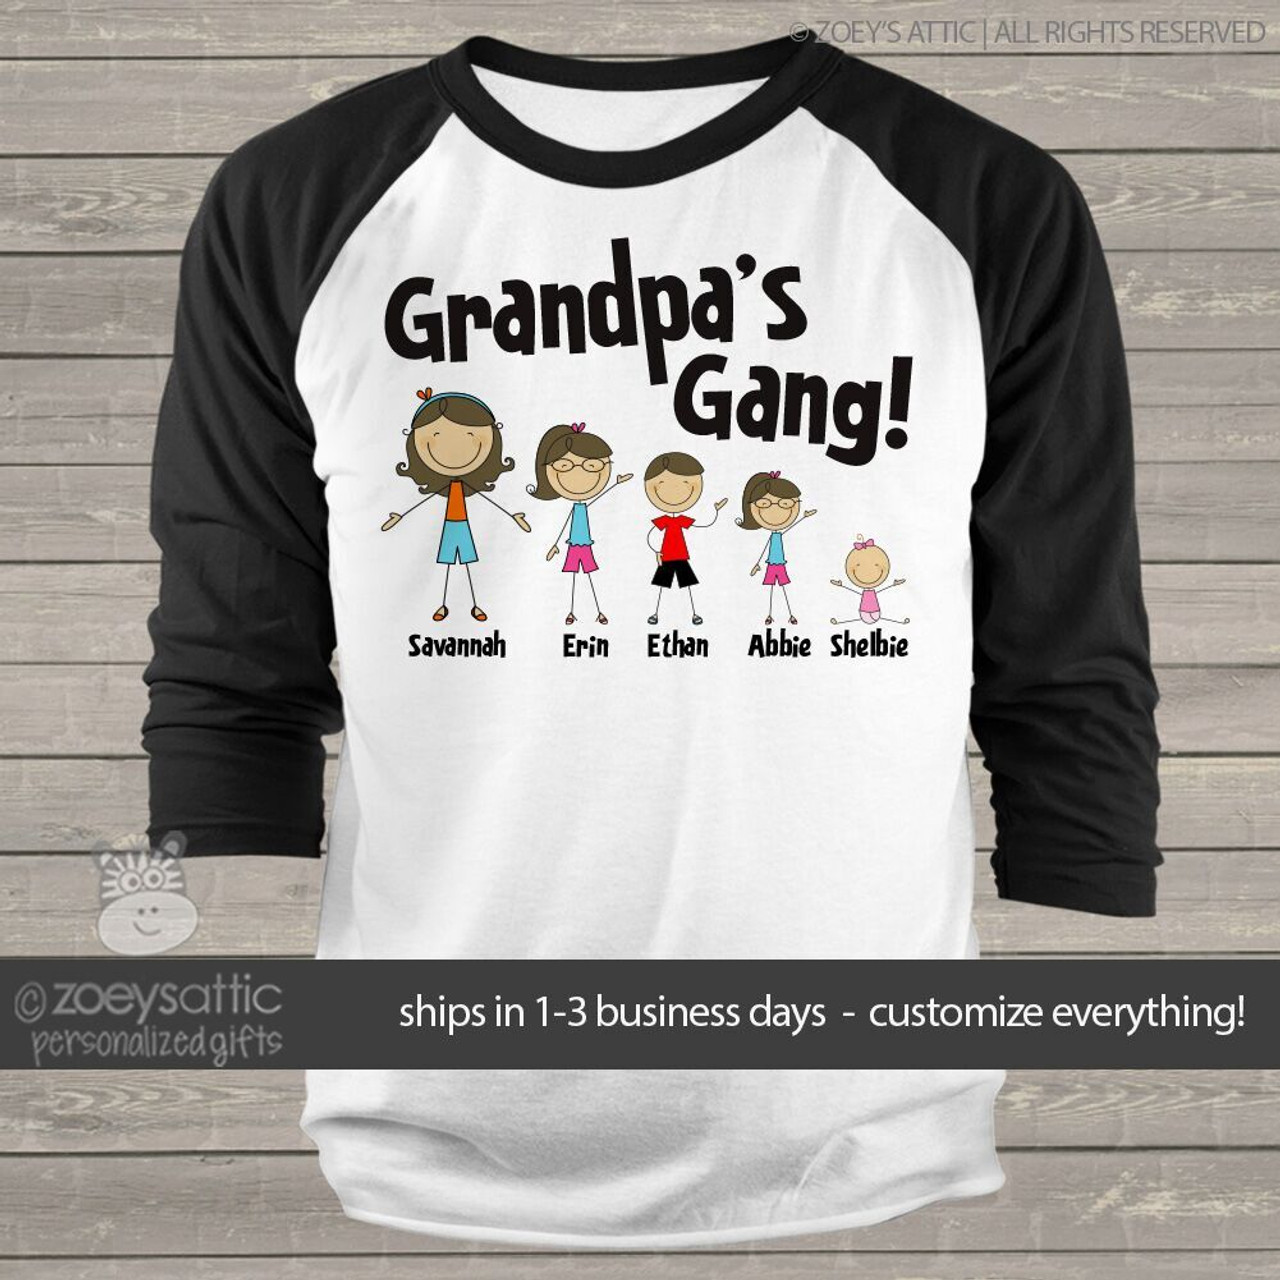 3a227474 grandpa shirt, personalized stick figure grandpa gang raglan